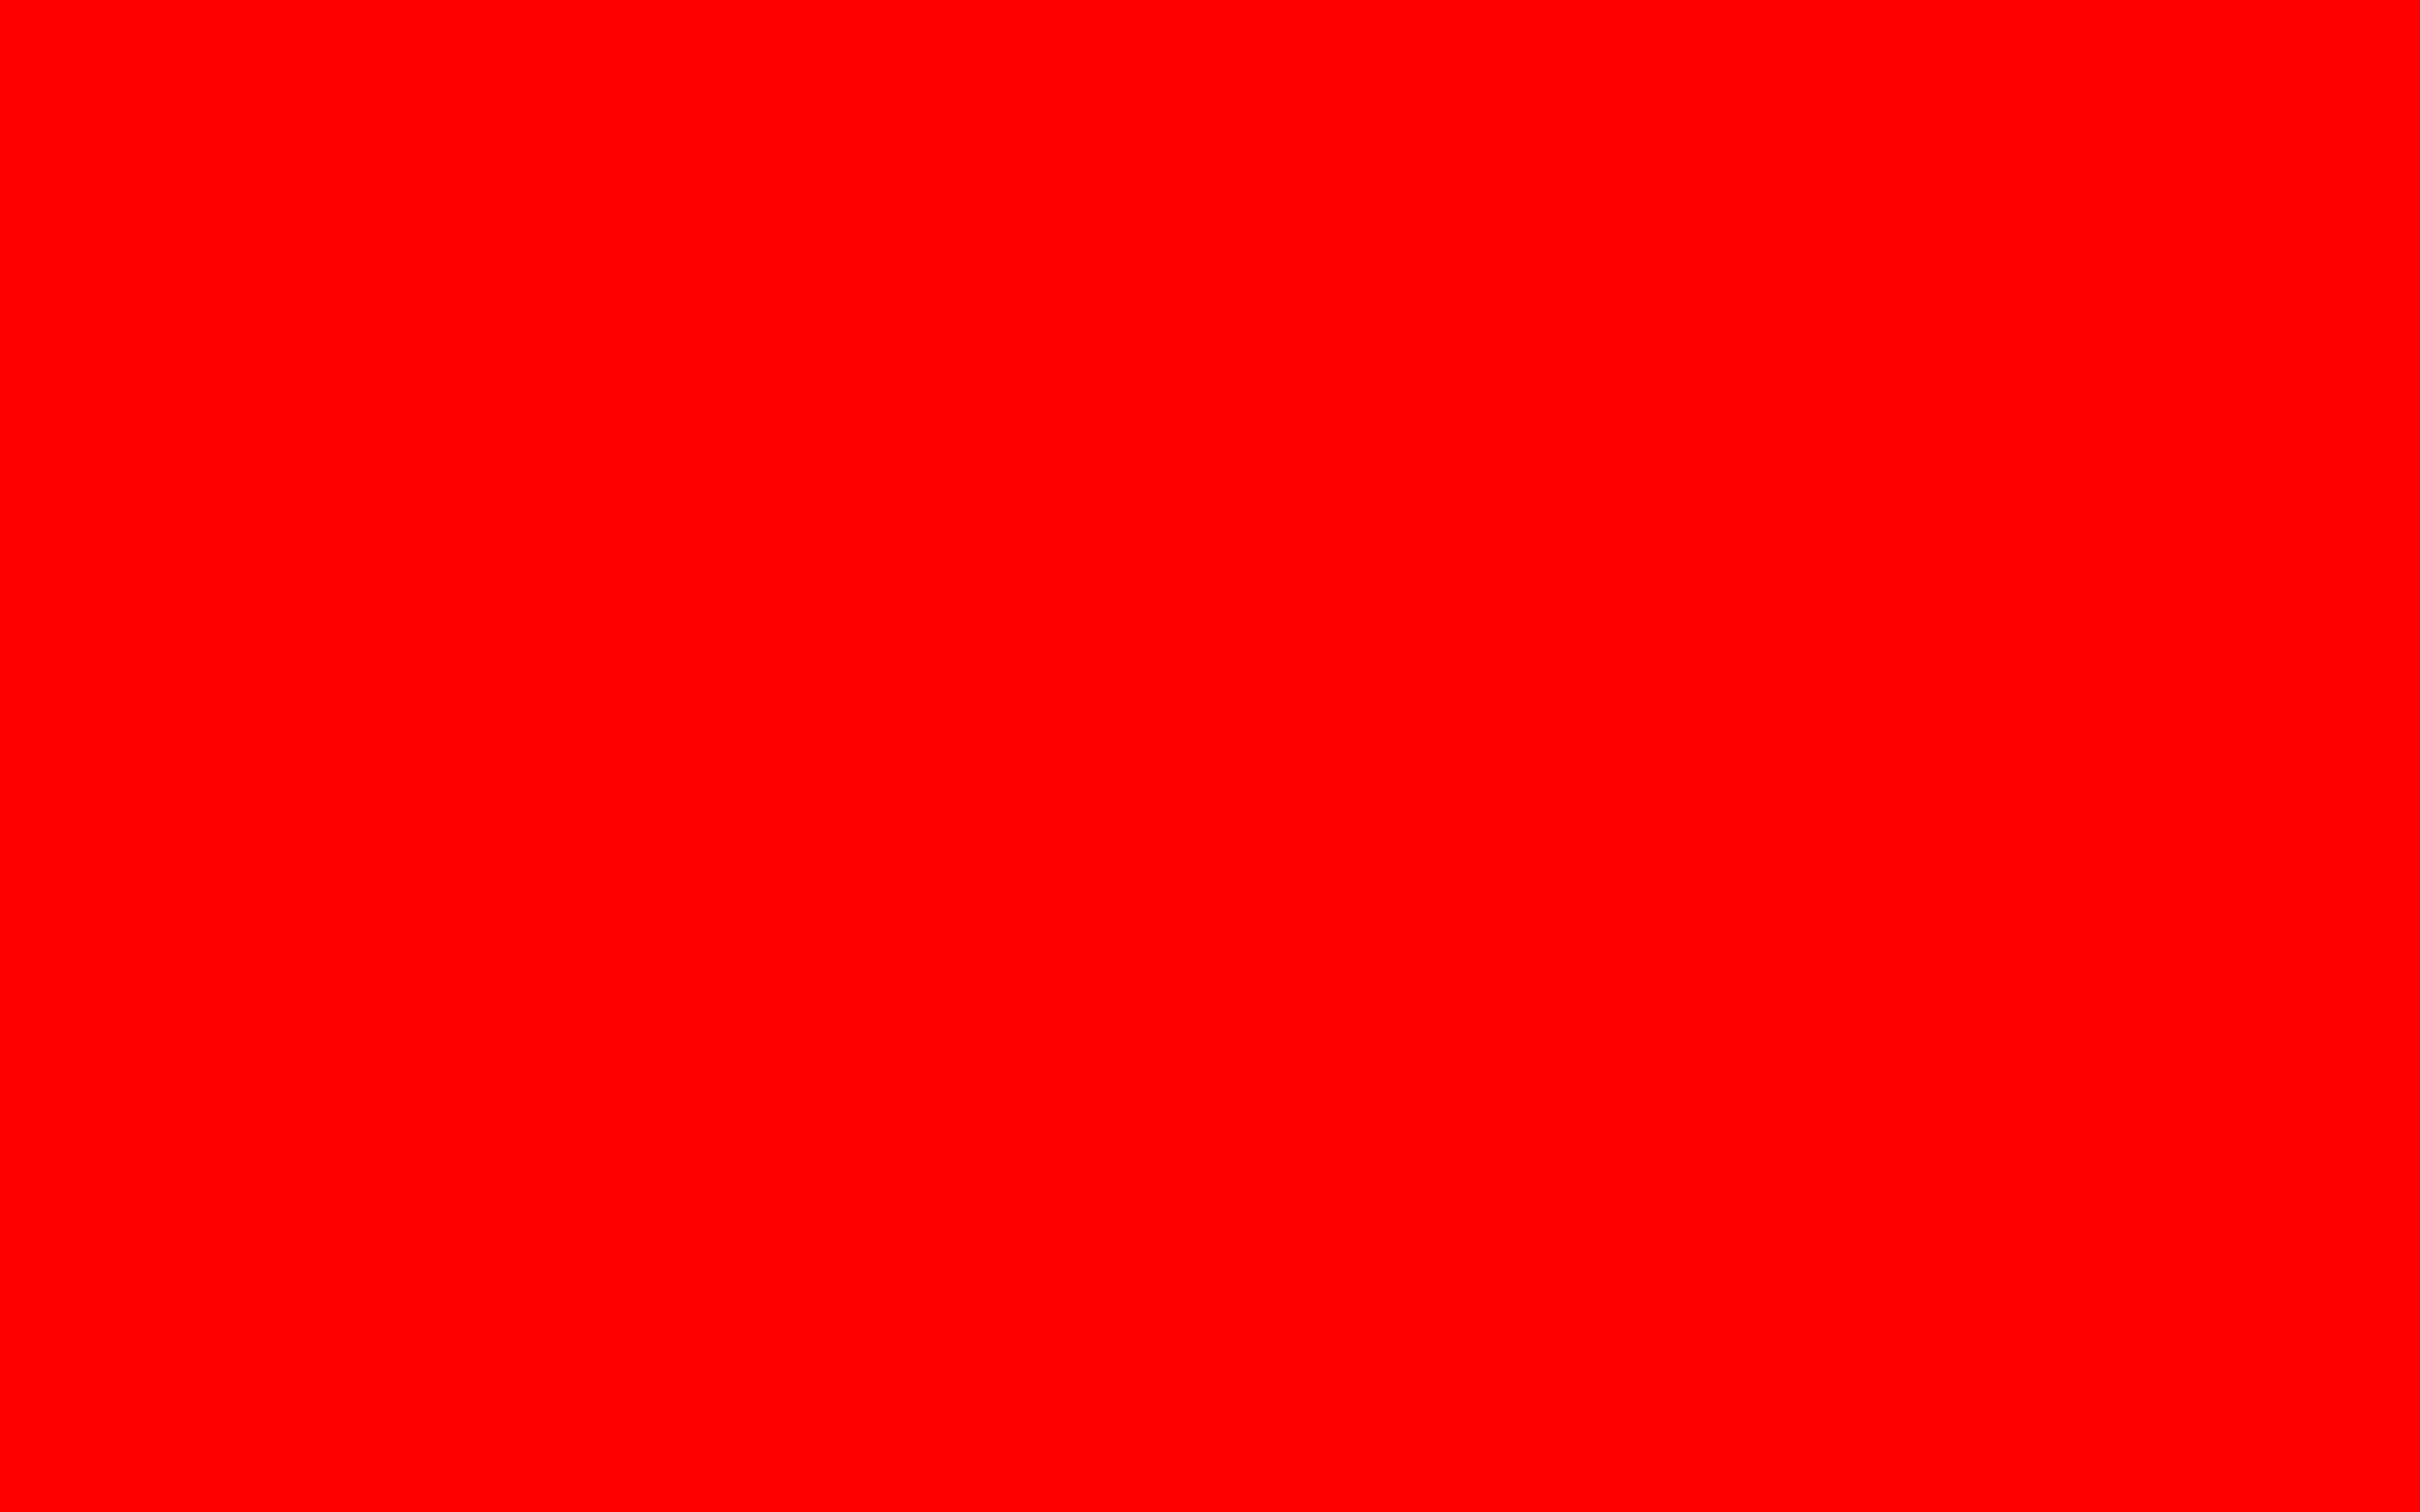 2560x1600 Red Solid Color Background